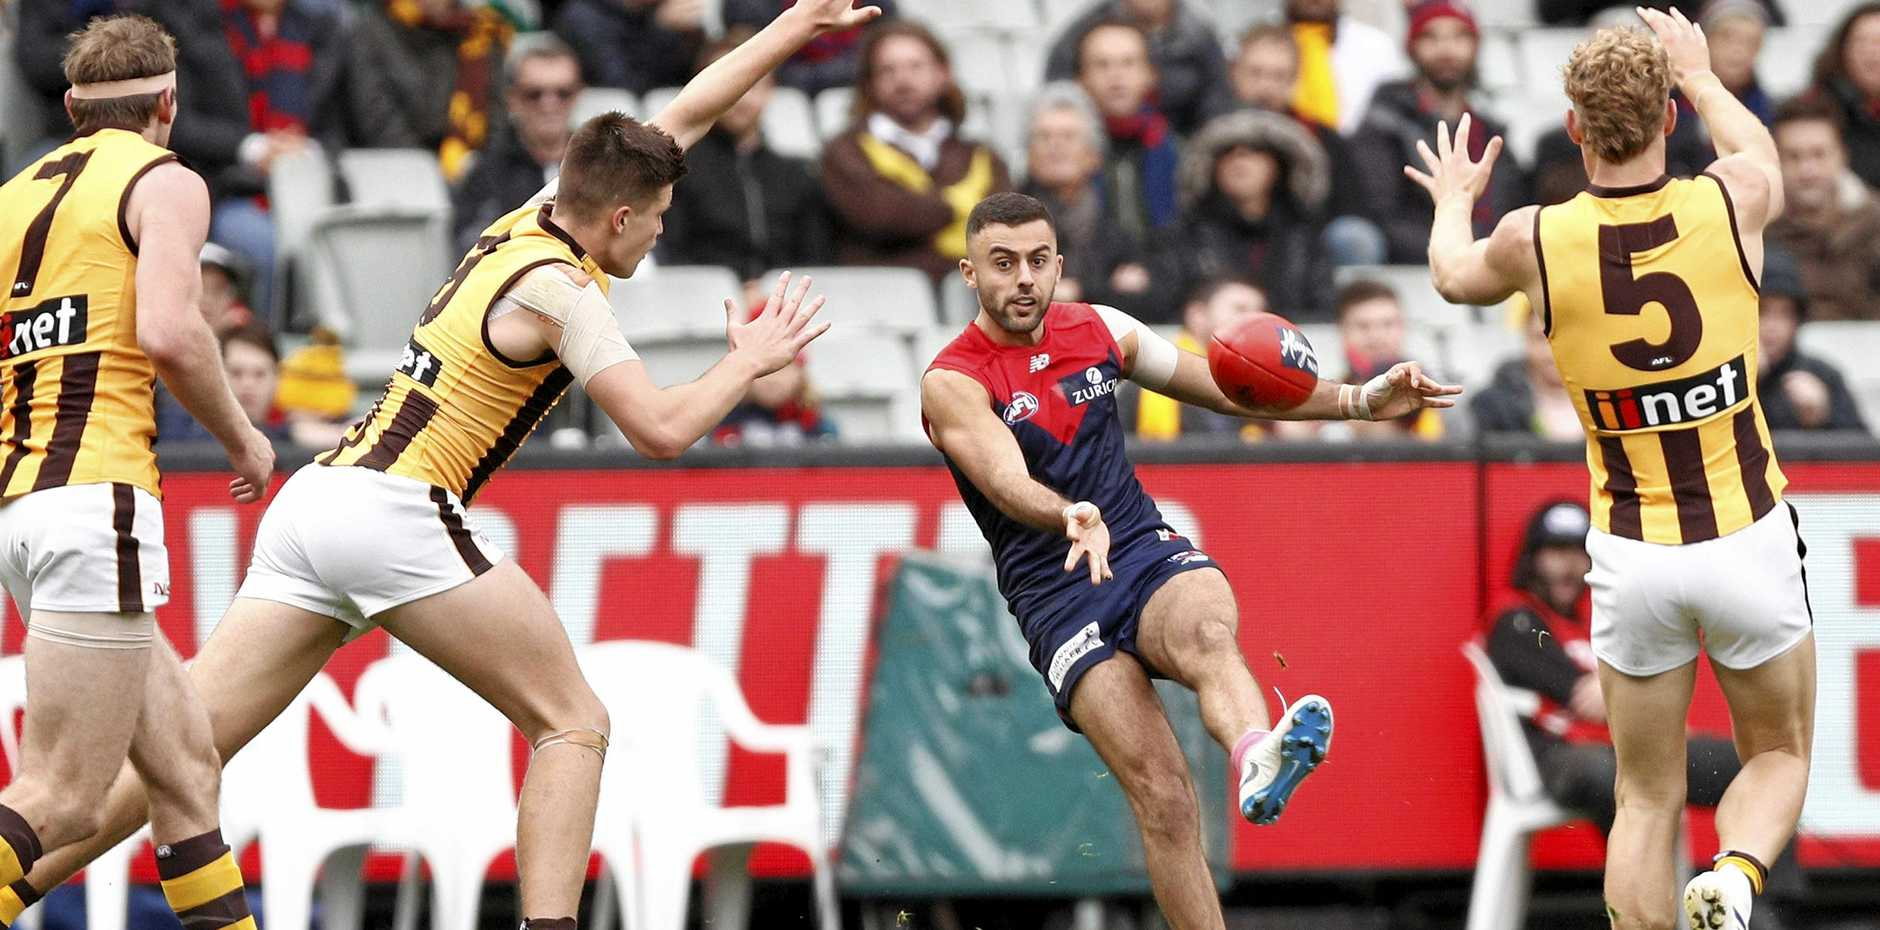 Melbourne's Christian Salem gets his kick away as the Hawks close in at the MCG on Saturday. Picture: Daniel Pockett/AAP